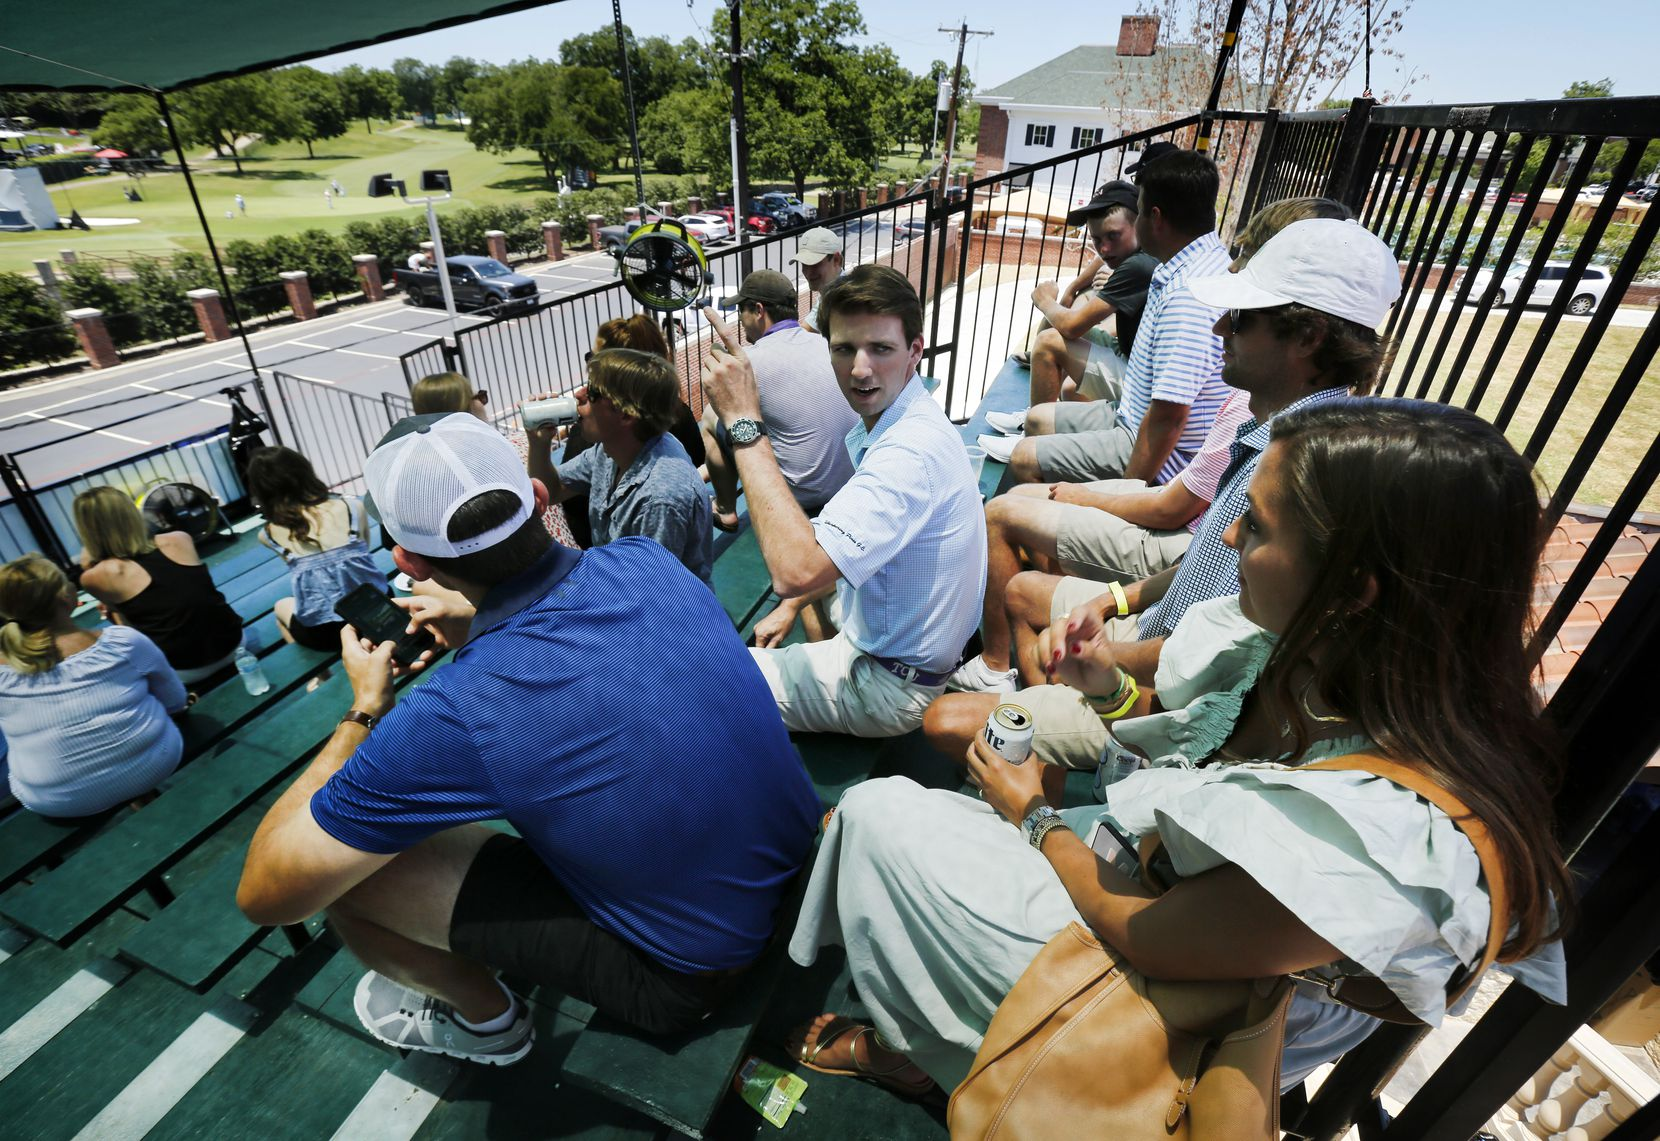 Jeff Wilhelm (center) turns to visit with Maddy Conklin (right) as they watched the third round of the Charles Schwab Challenge. Their view of the 15th green and 16th tee box are from grandstands built behind Pat Henggeler's home next to the Colonial Country Club in Fort Worth, Saturday, June 13, 2020. Last year they all went to the course to watch the action.